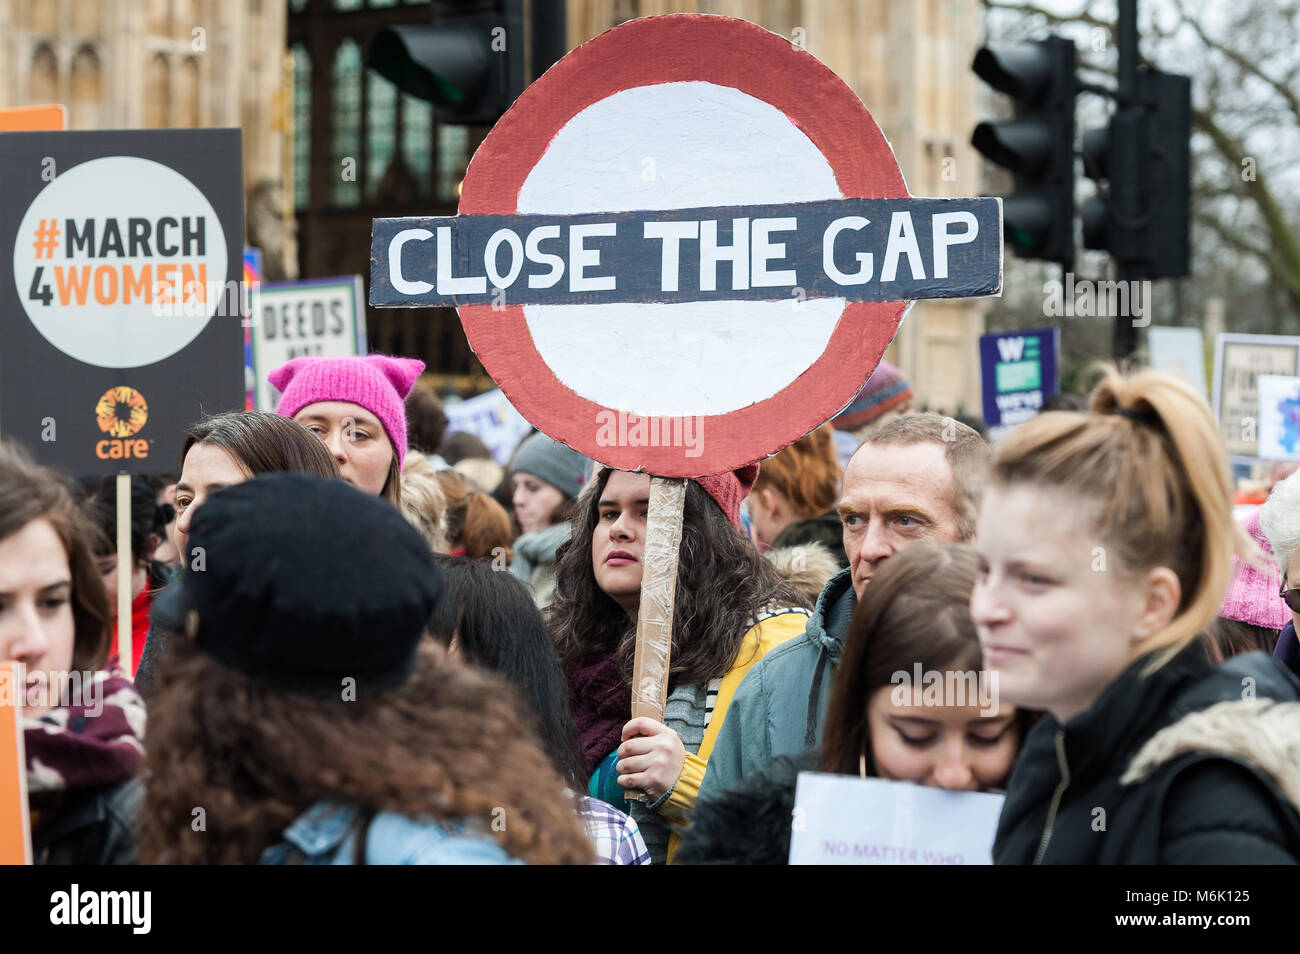 London, UK. 4th March, 2018. Thousands of people including politicians, celebrities and activists gather at Old - Stock Image